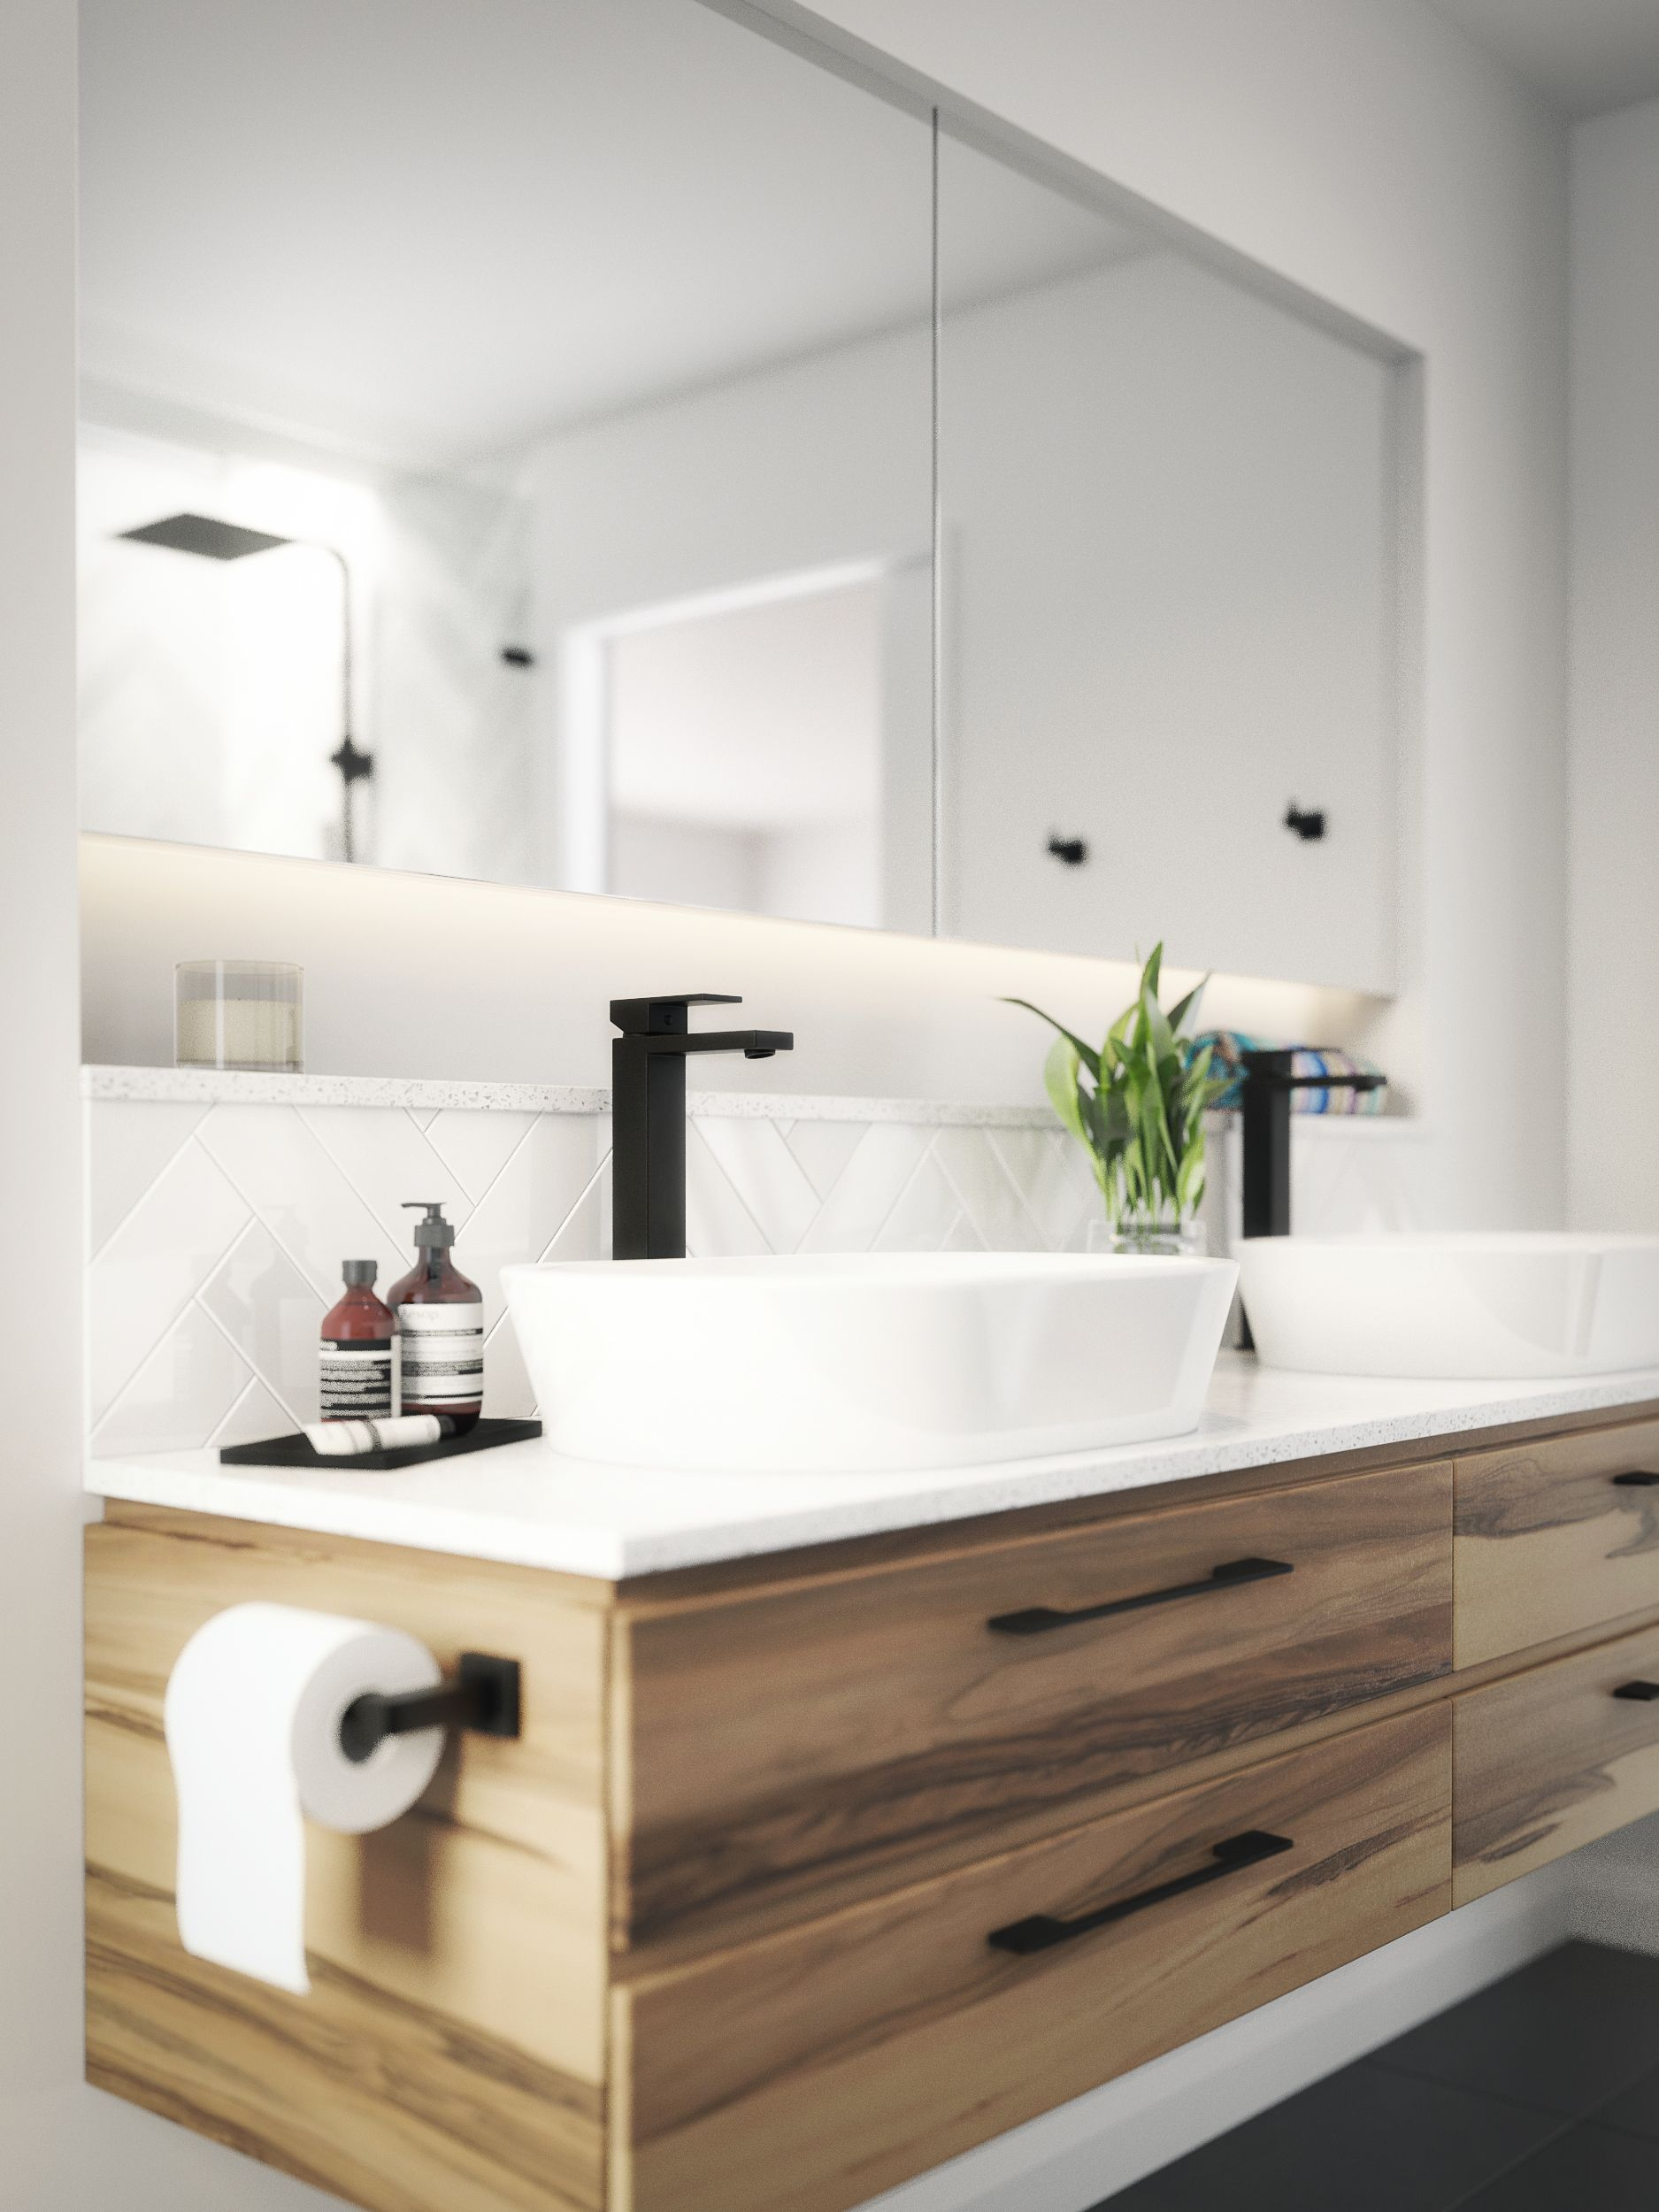 Meir australia matte black tapware get the look at www for Australian small bathroom design